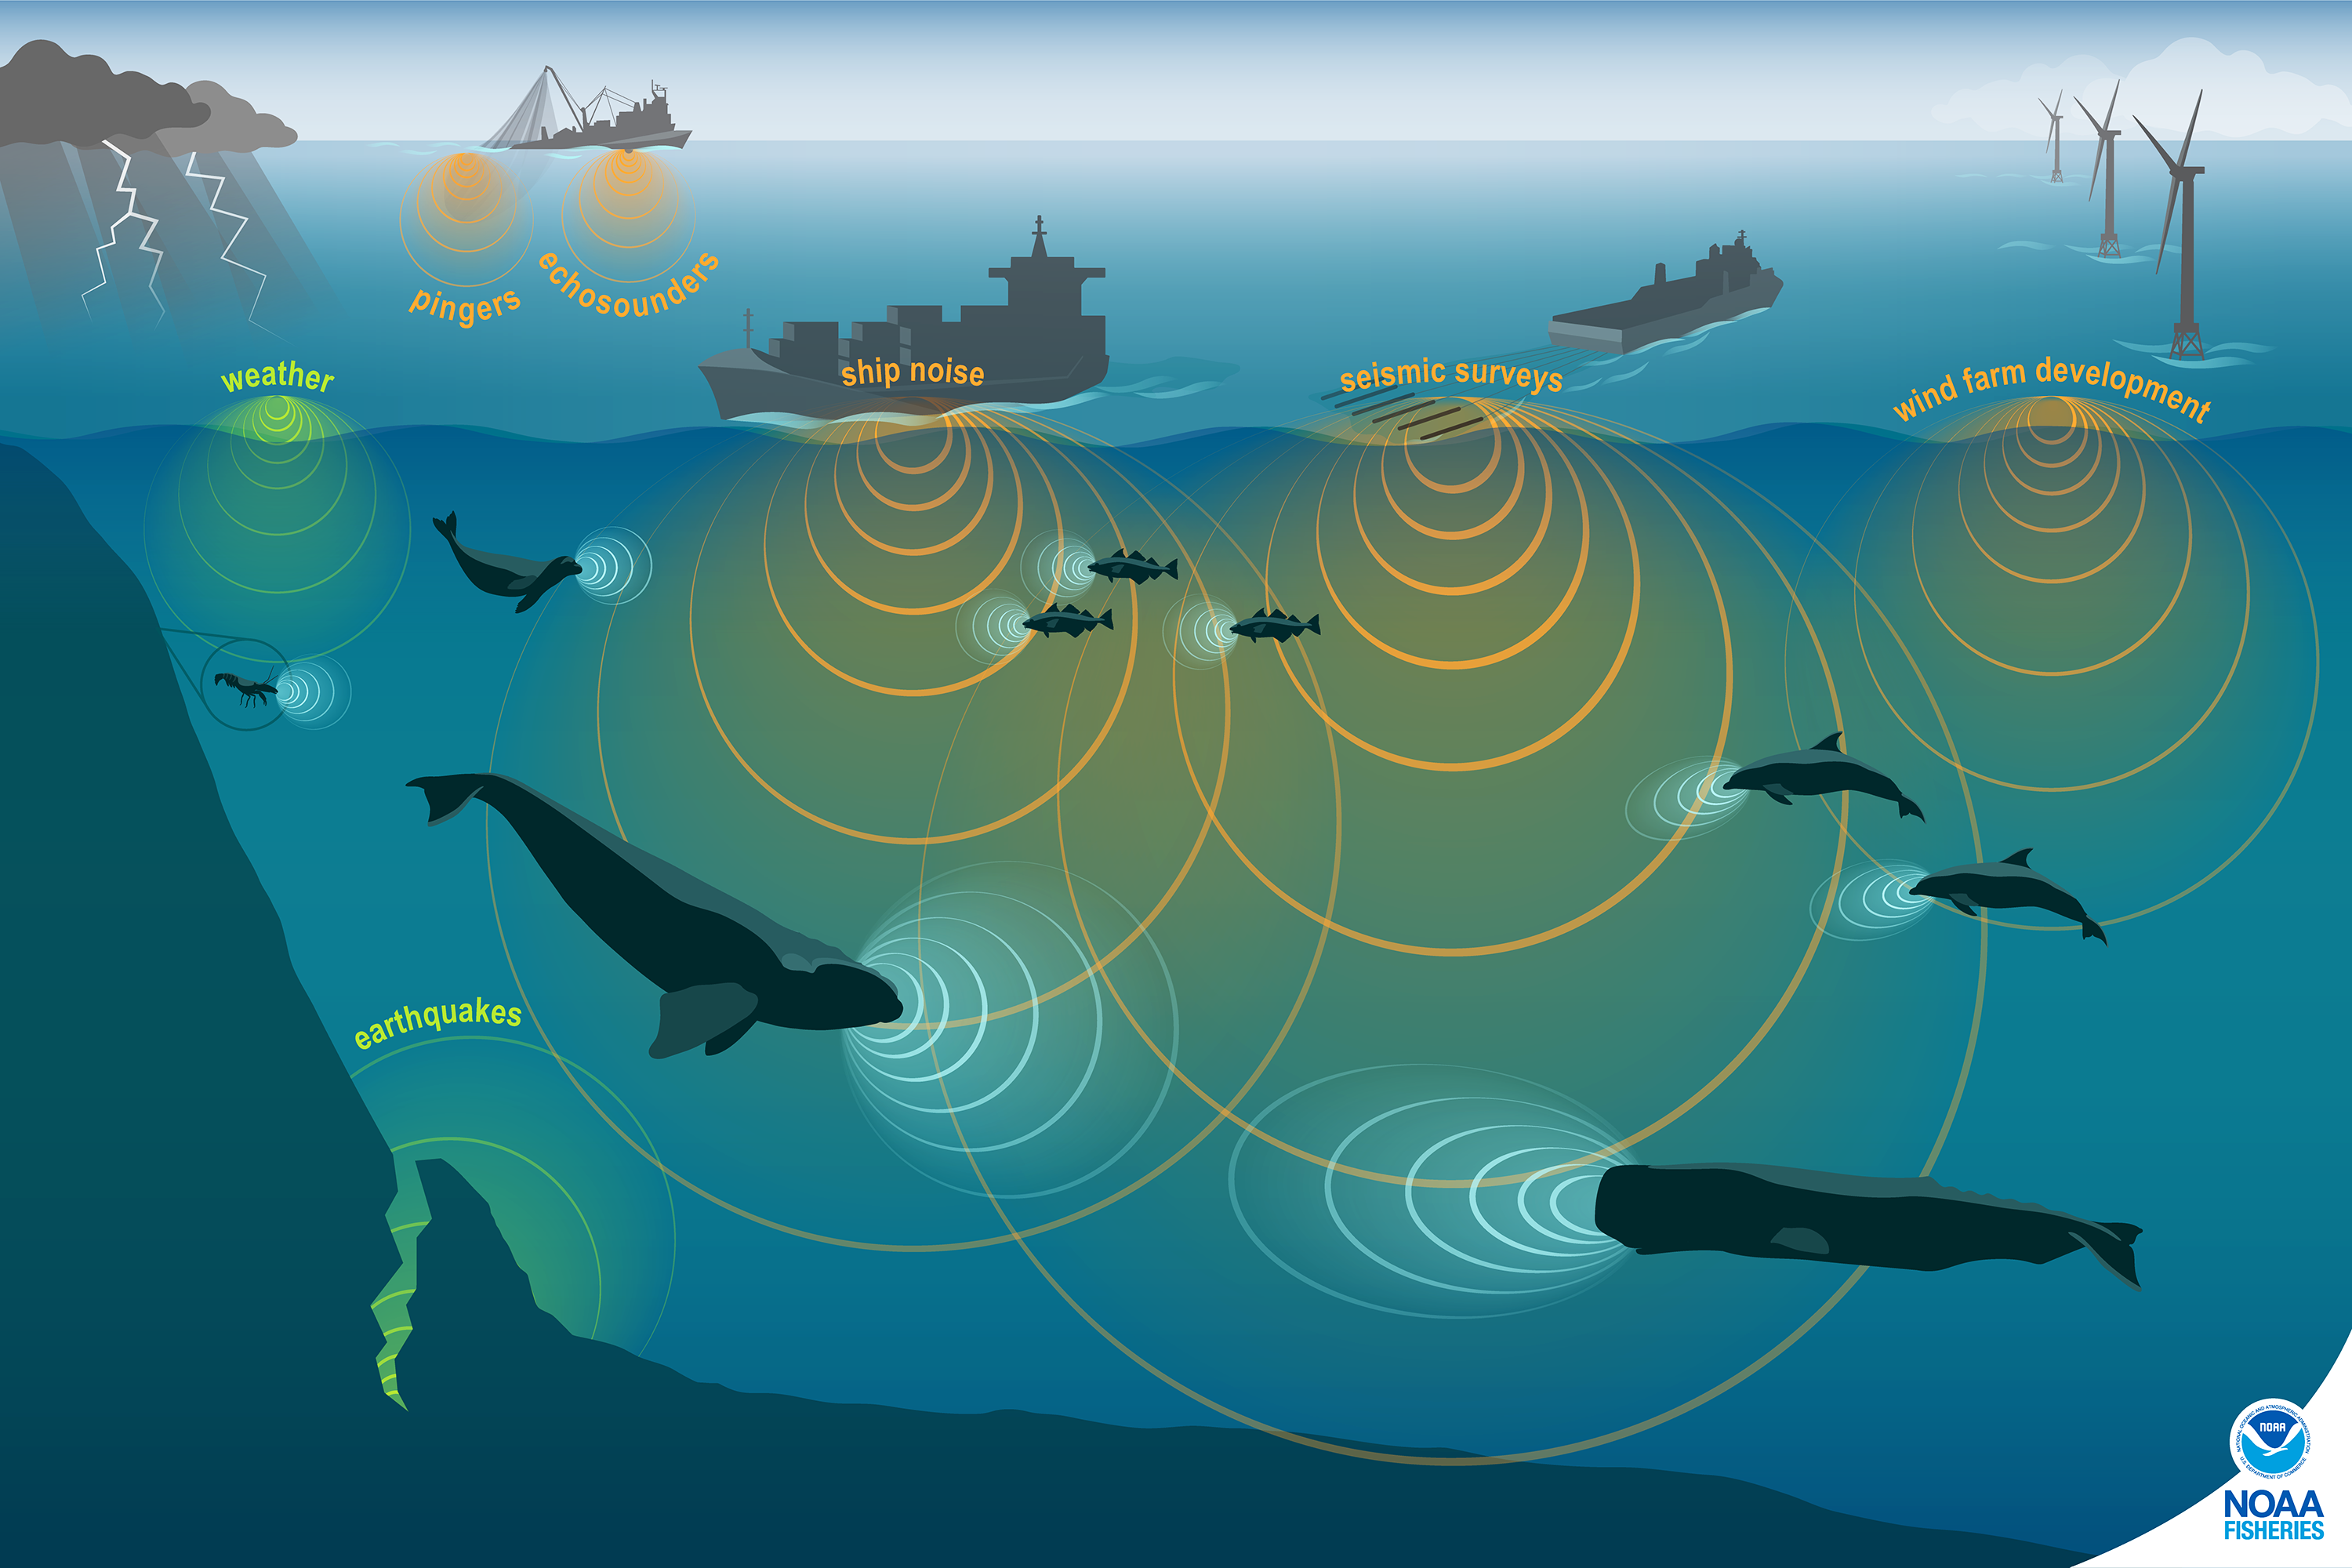 This conceptual illustration shows images of human, marine animal, and environmental sources of sound and approximately proportional sound waves. Soundscapes include sounds made by humans (anthropogenic; orange sound waves), the environment (natural sounds; green sound waves), and by biological sources (animals: marine mammals, fish, and invertebrates; blue sound waves).